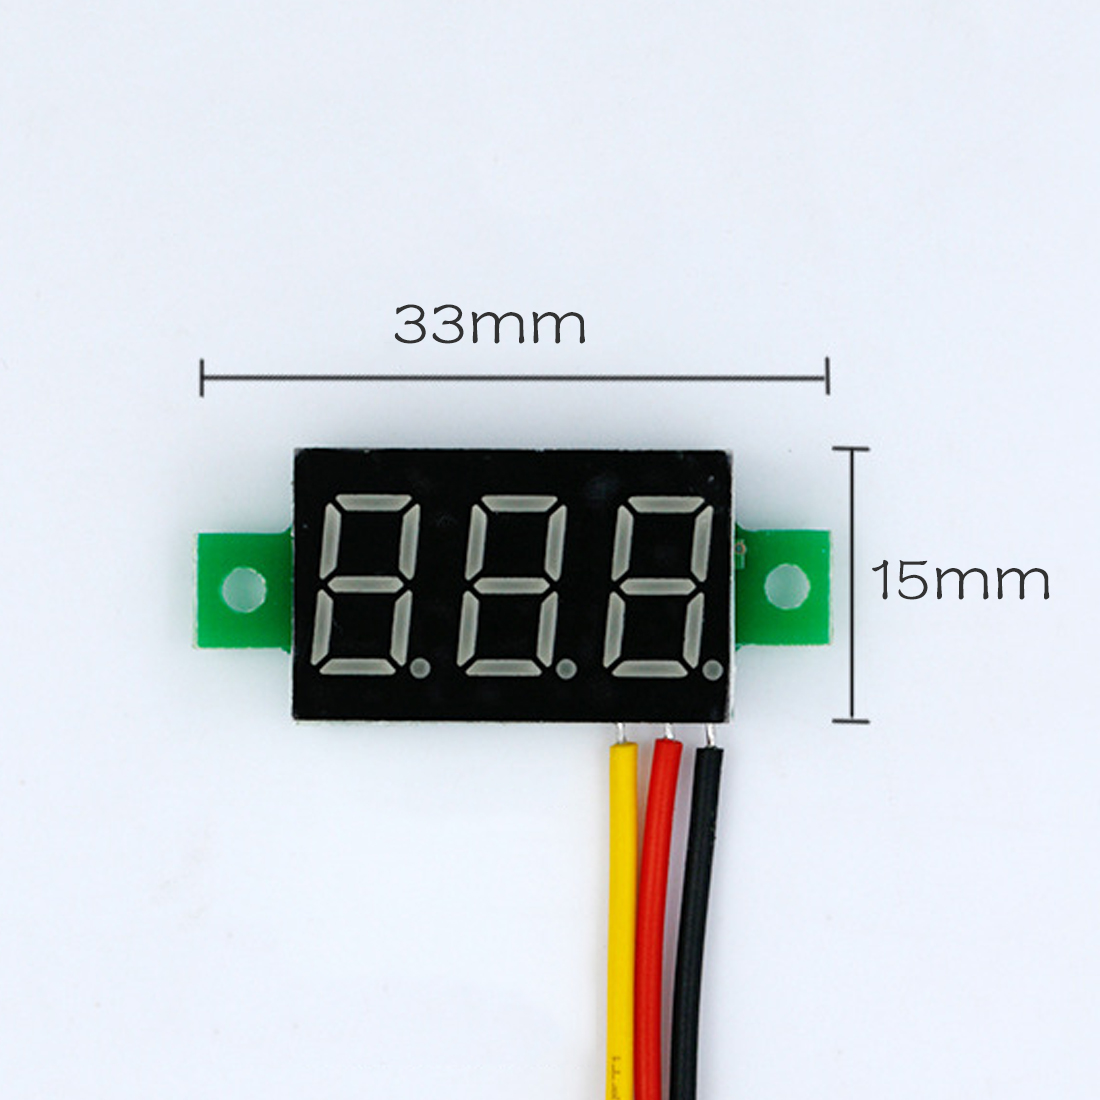 DC 0-100v 3 Bits 0.36 inch Digital Red LED Display Panel Voltage Meter Voltmeter Tester Hot Mini mini voltmeter tester digital voltage test battery dc 0 30v red blue green auto car